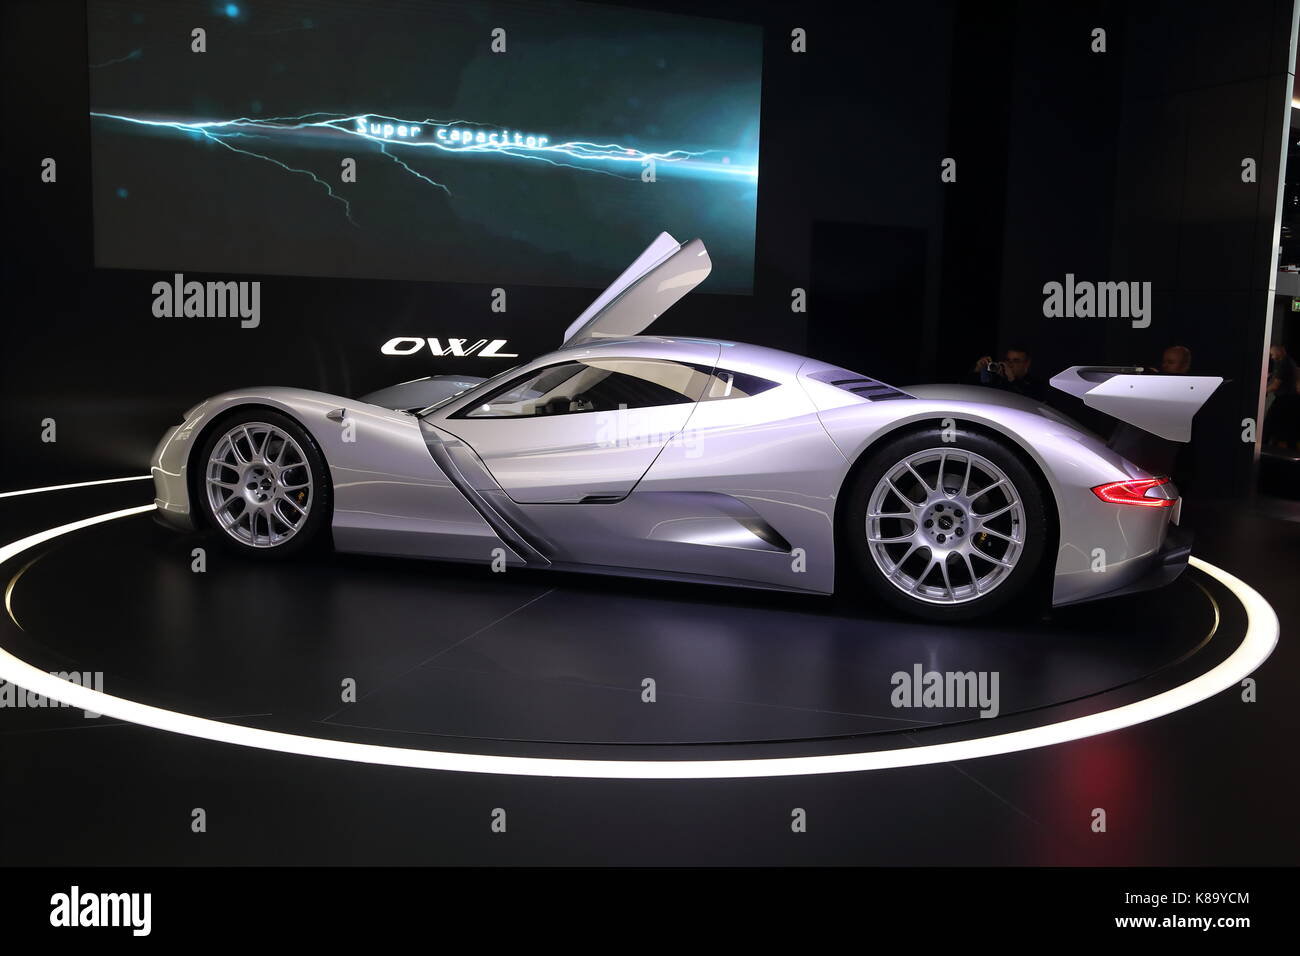 Car manufacturers from all over the world present their newest models and concept cars at this year's IAA car - Stock Image